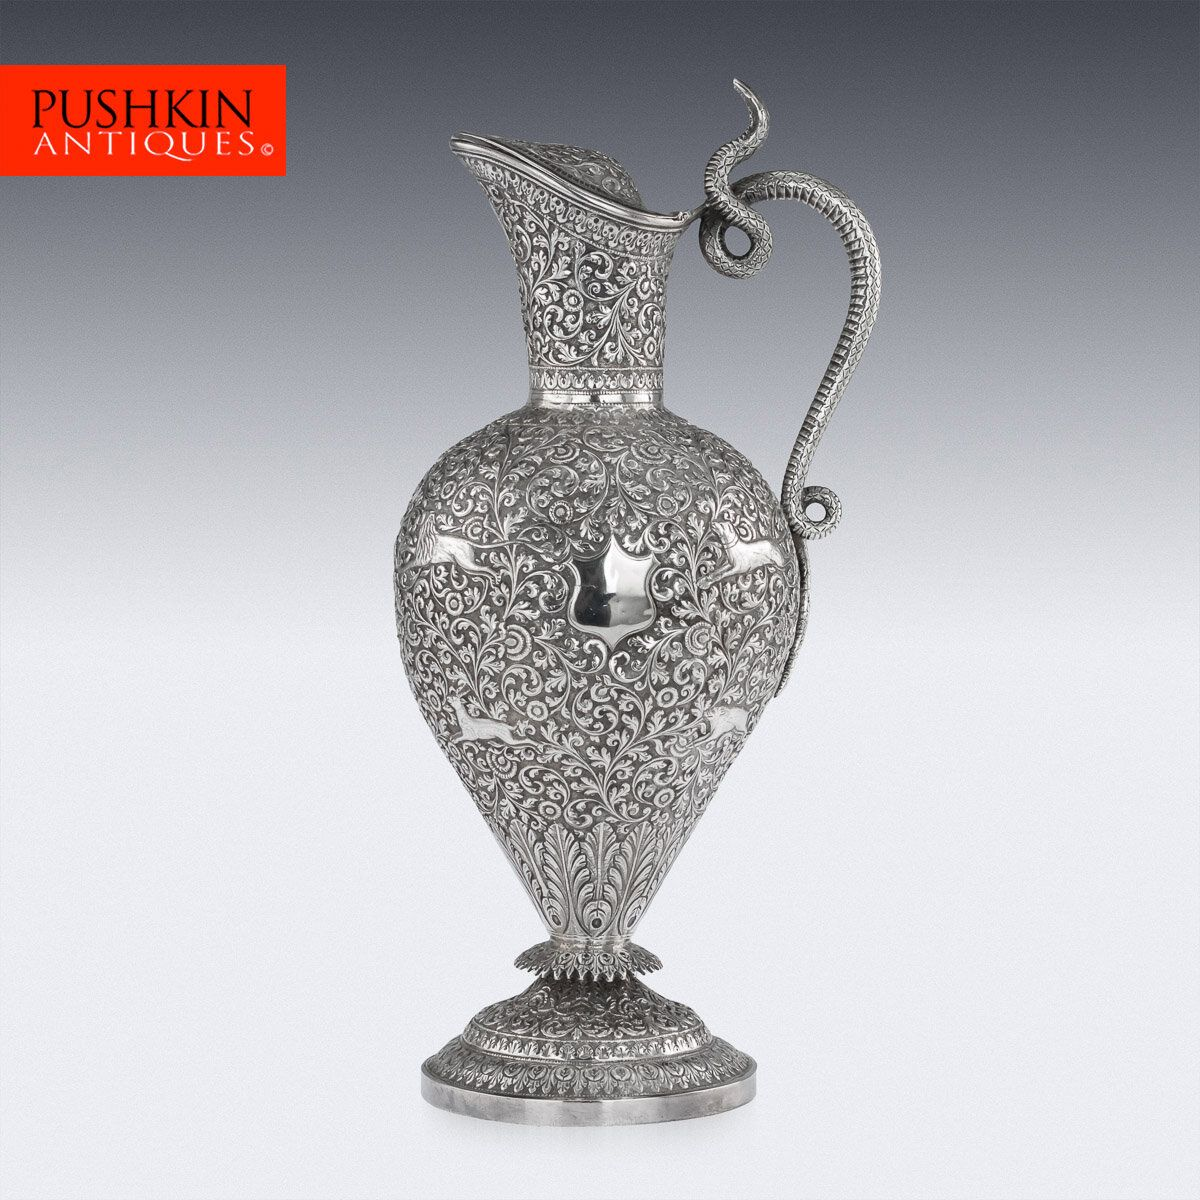 19TH CENTURY INDIAN SILVER PERFUME